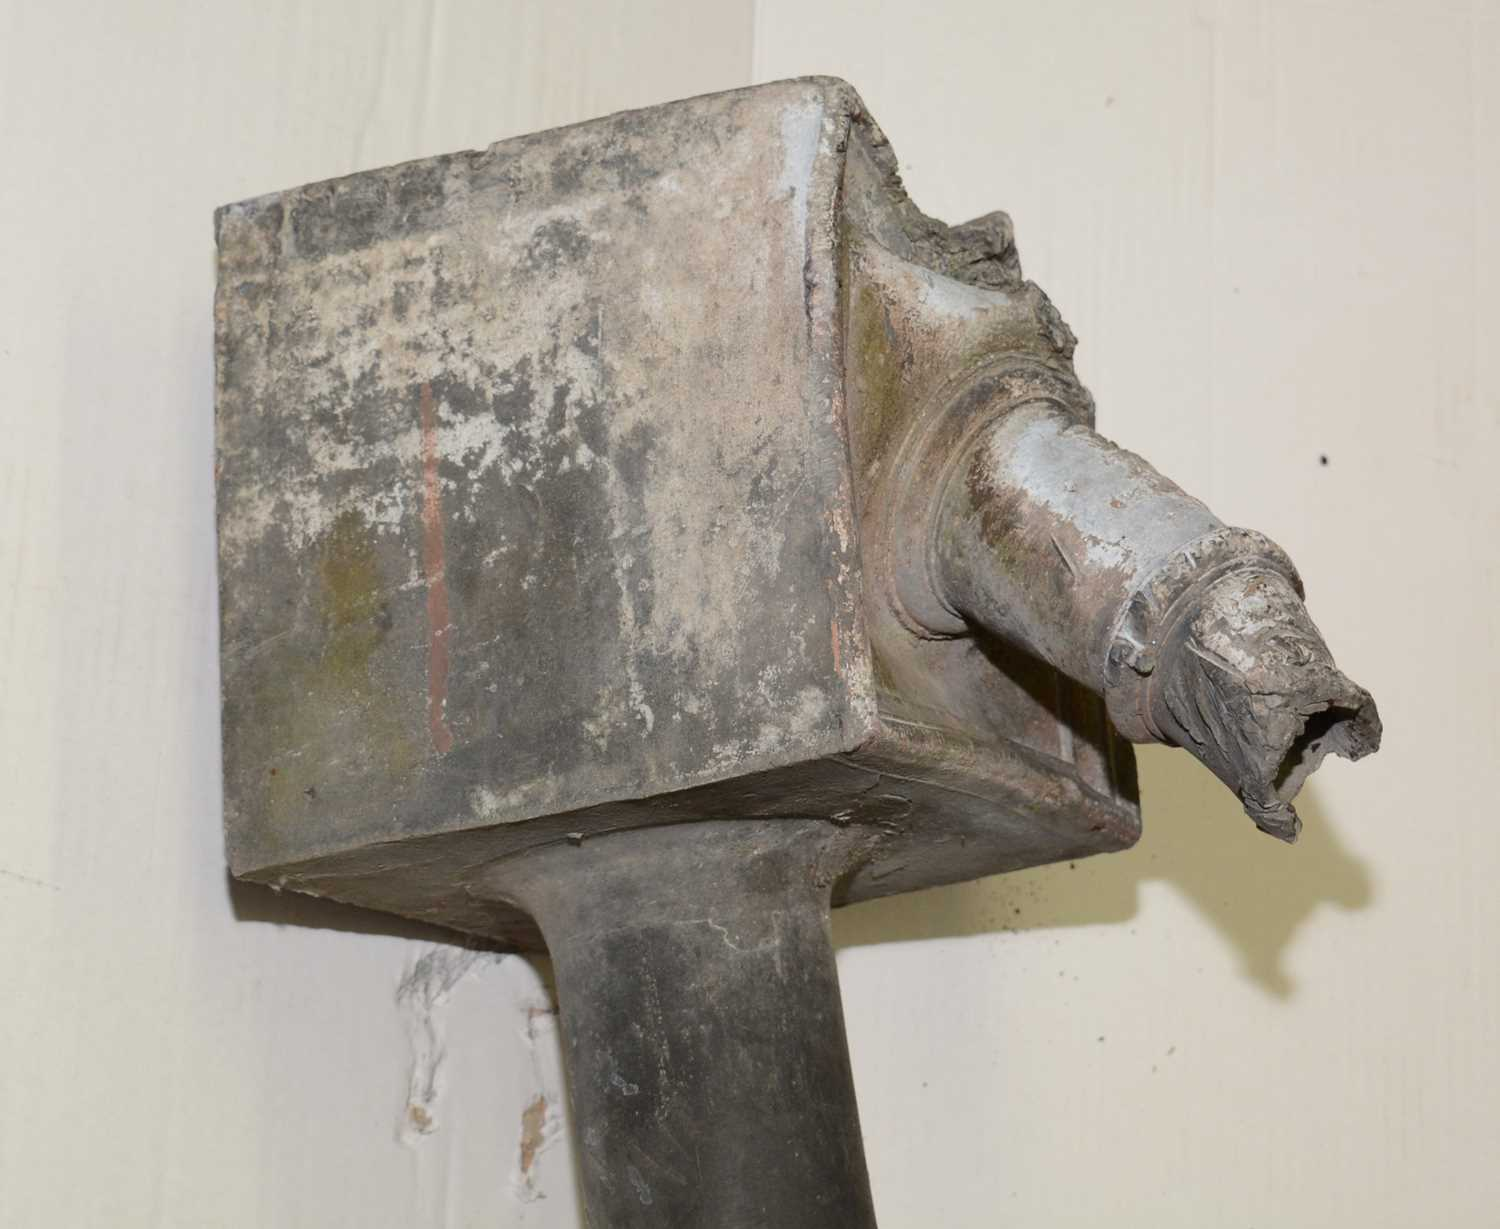 19th Century lead drain junction - Image 4 of 11